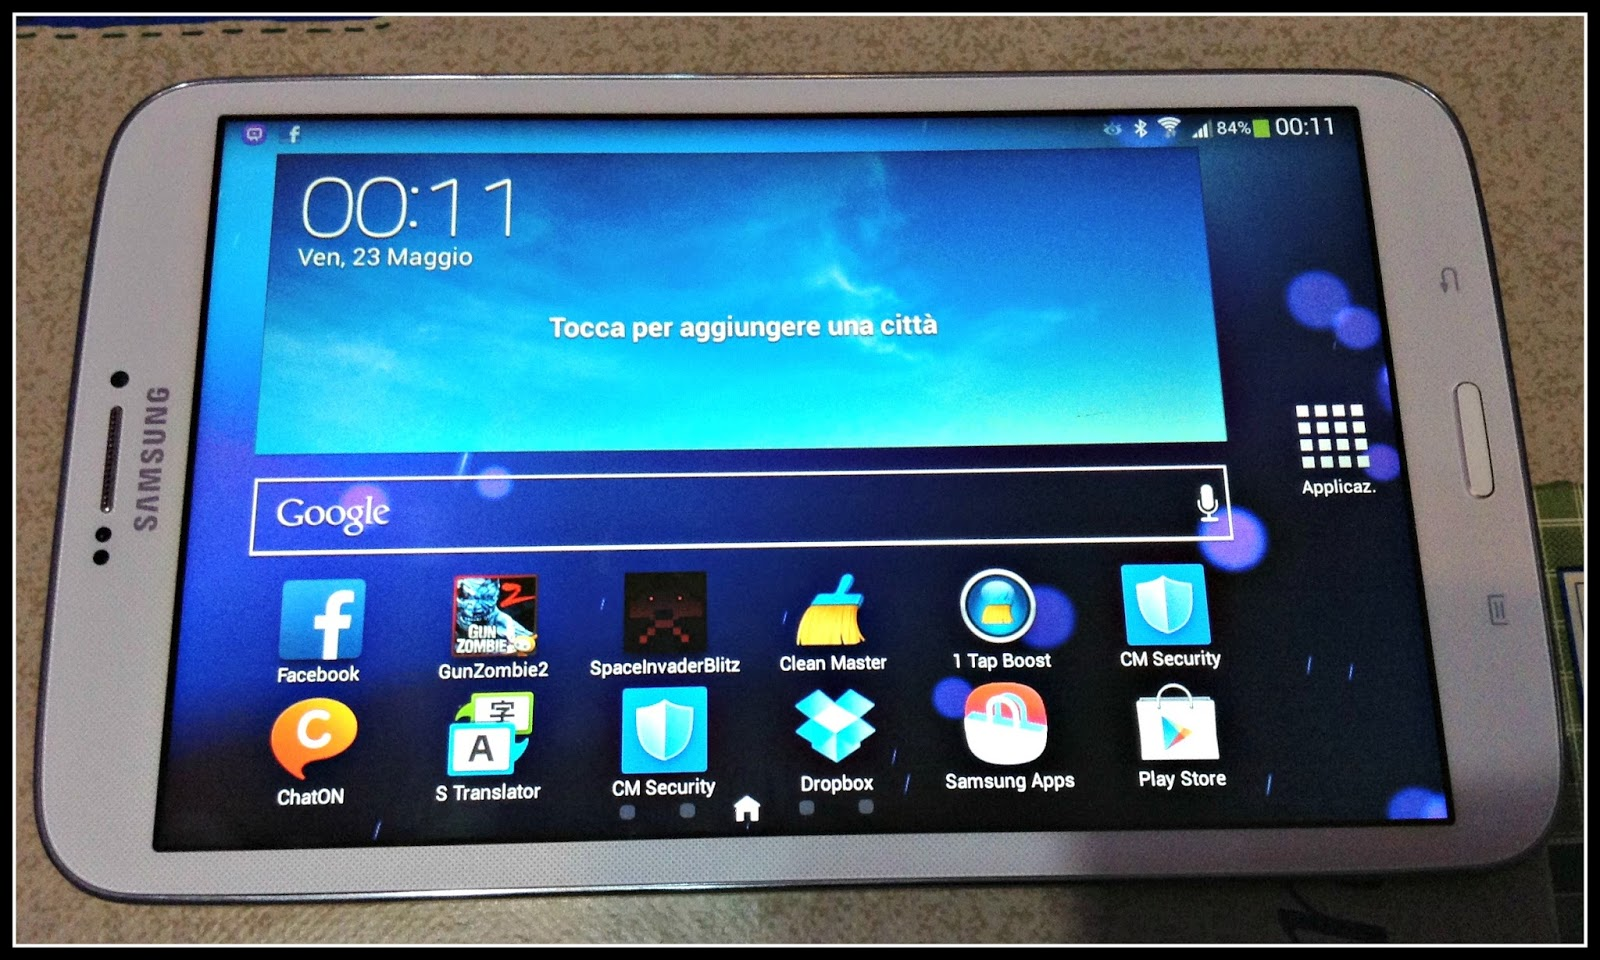 recensione di alcuni programmi del samsung galaxy tablet 3 8.0 redcoon.it